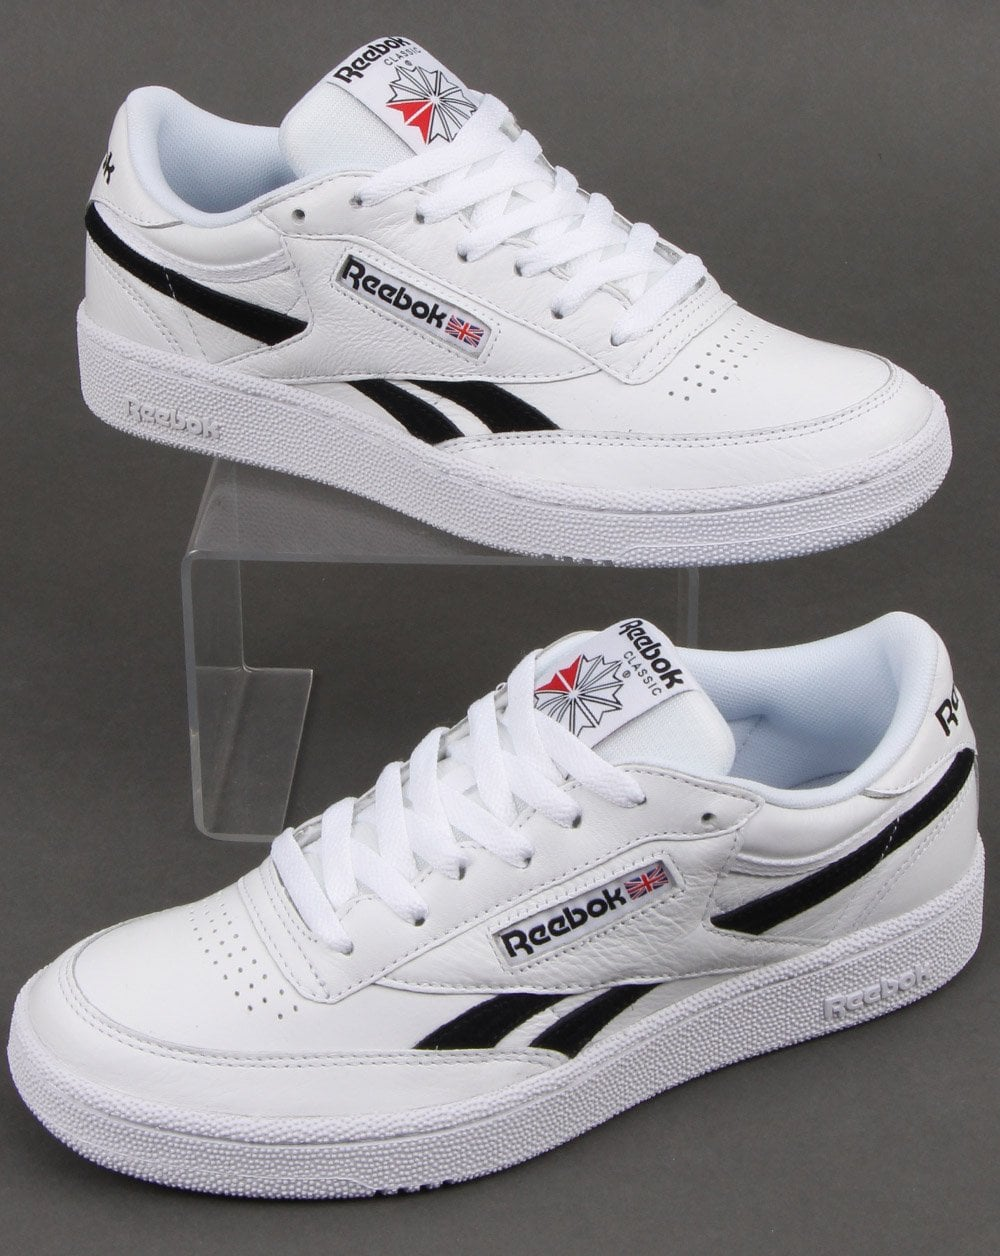 reebok shoes white and black